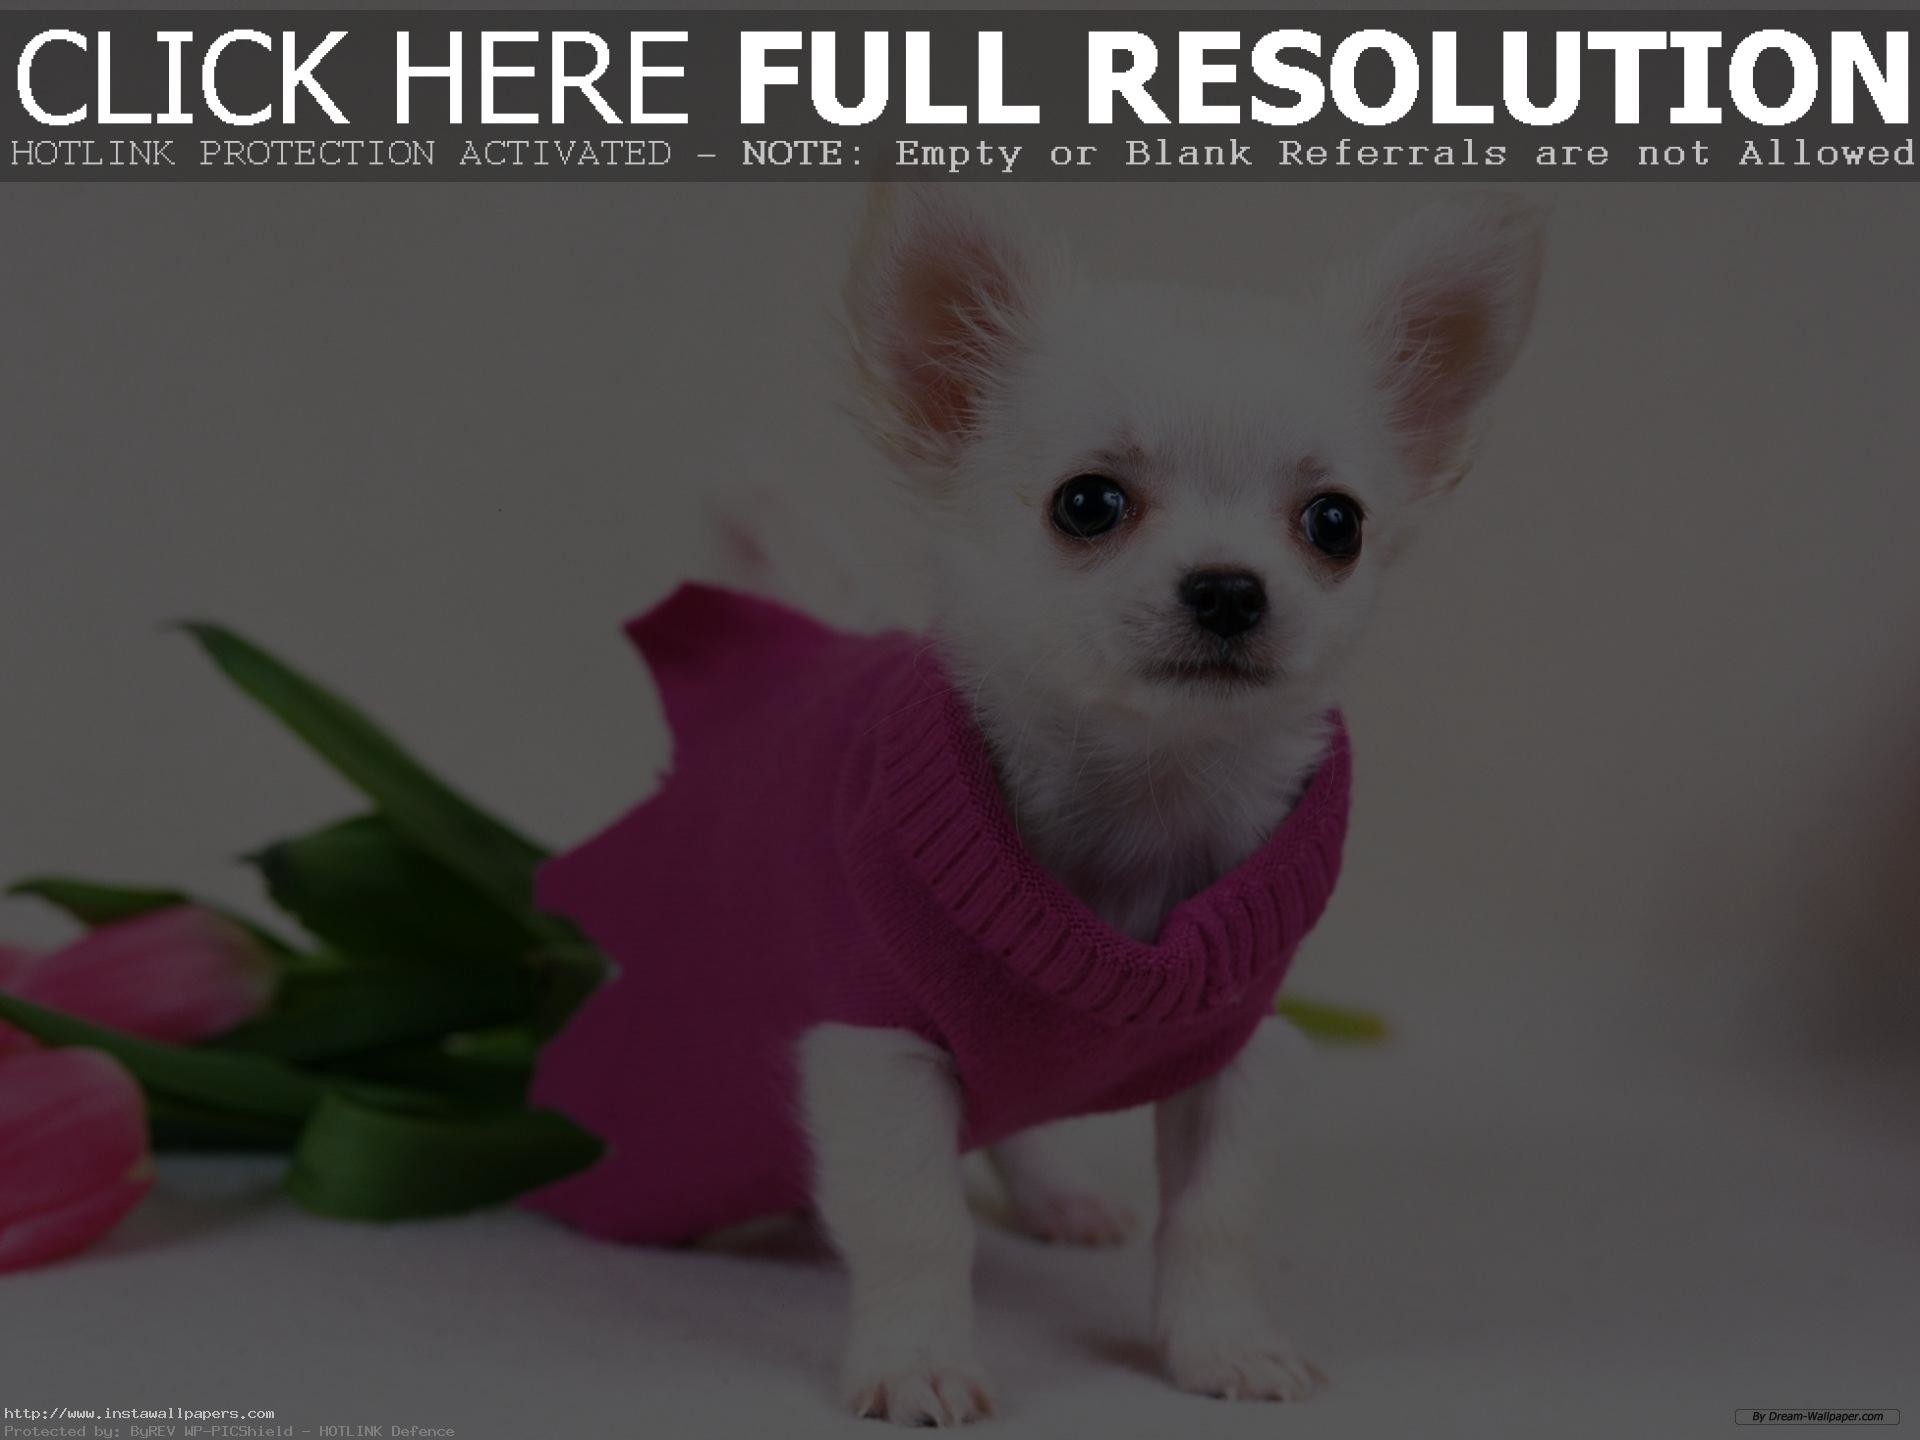 free chihuahua puppy wallpaper for desktop HD PC Laptop background